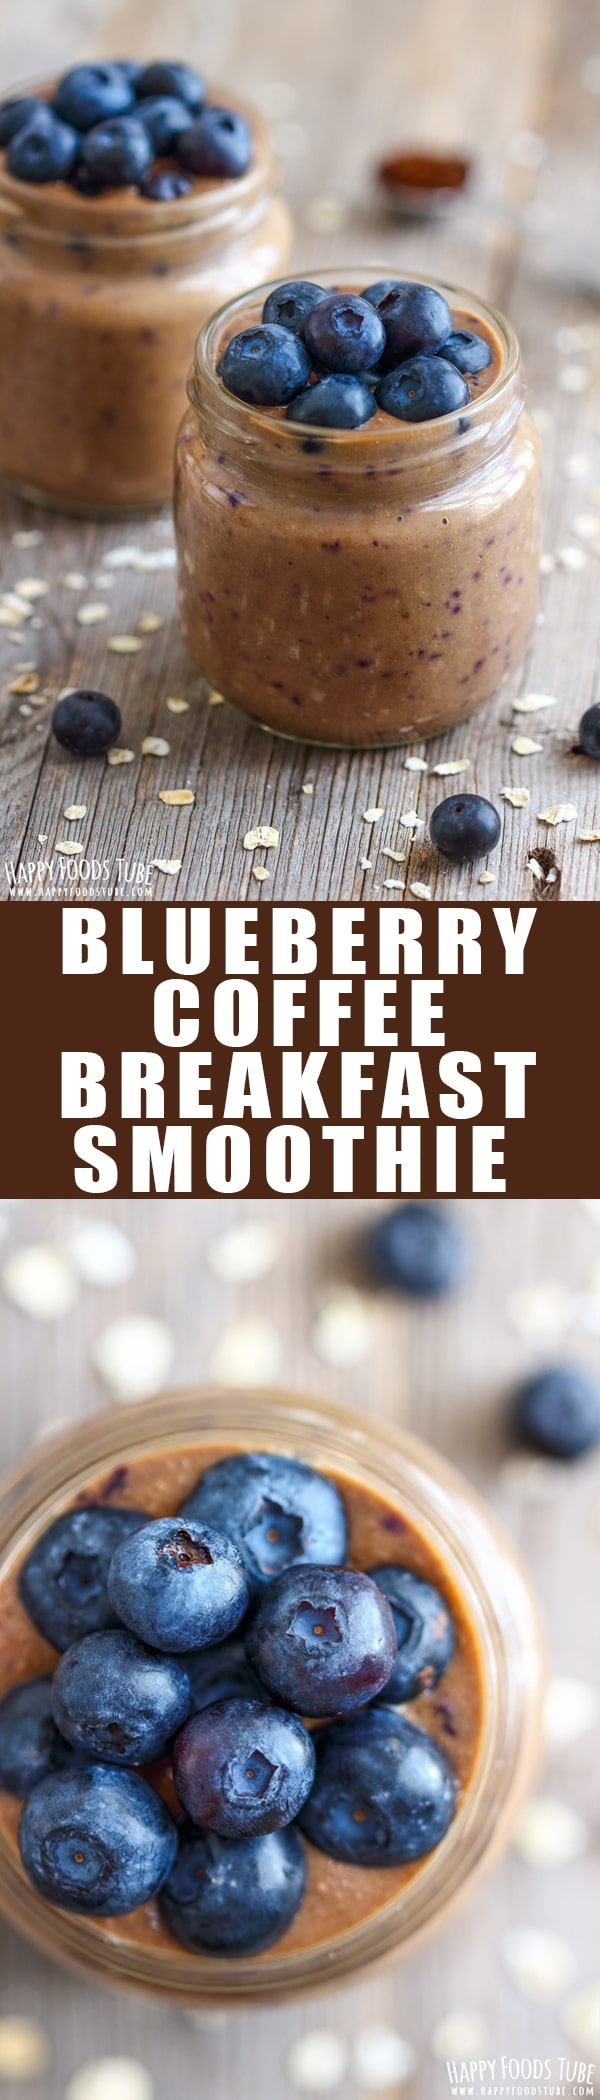 Blueberry Coffee Breakfast Smoothie Recipe Picture